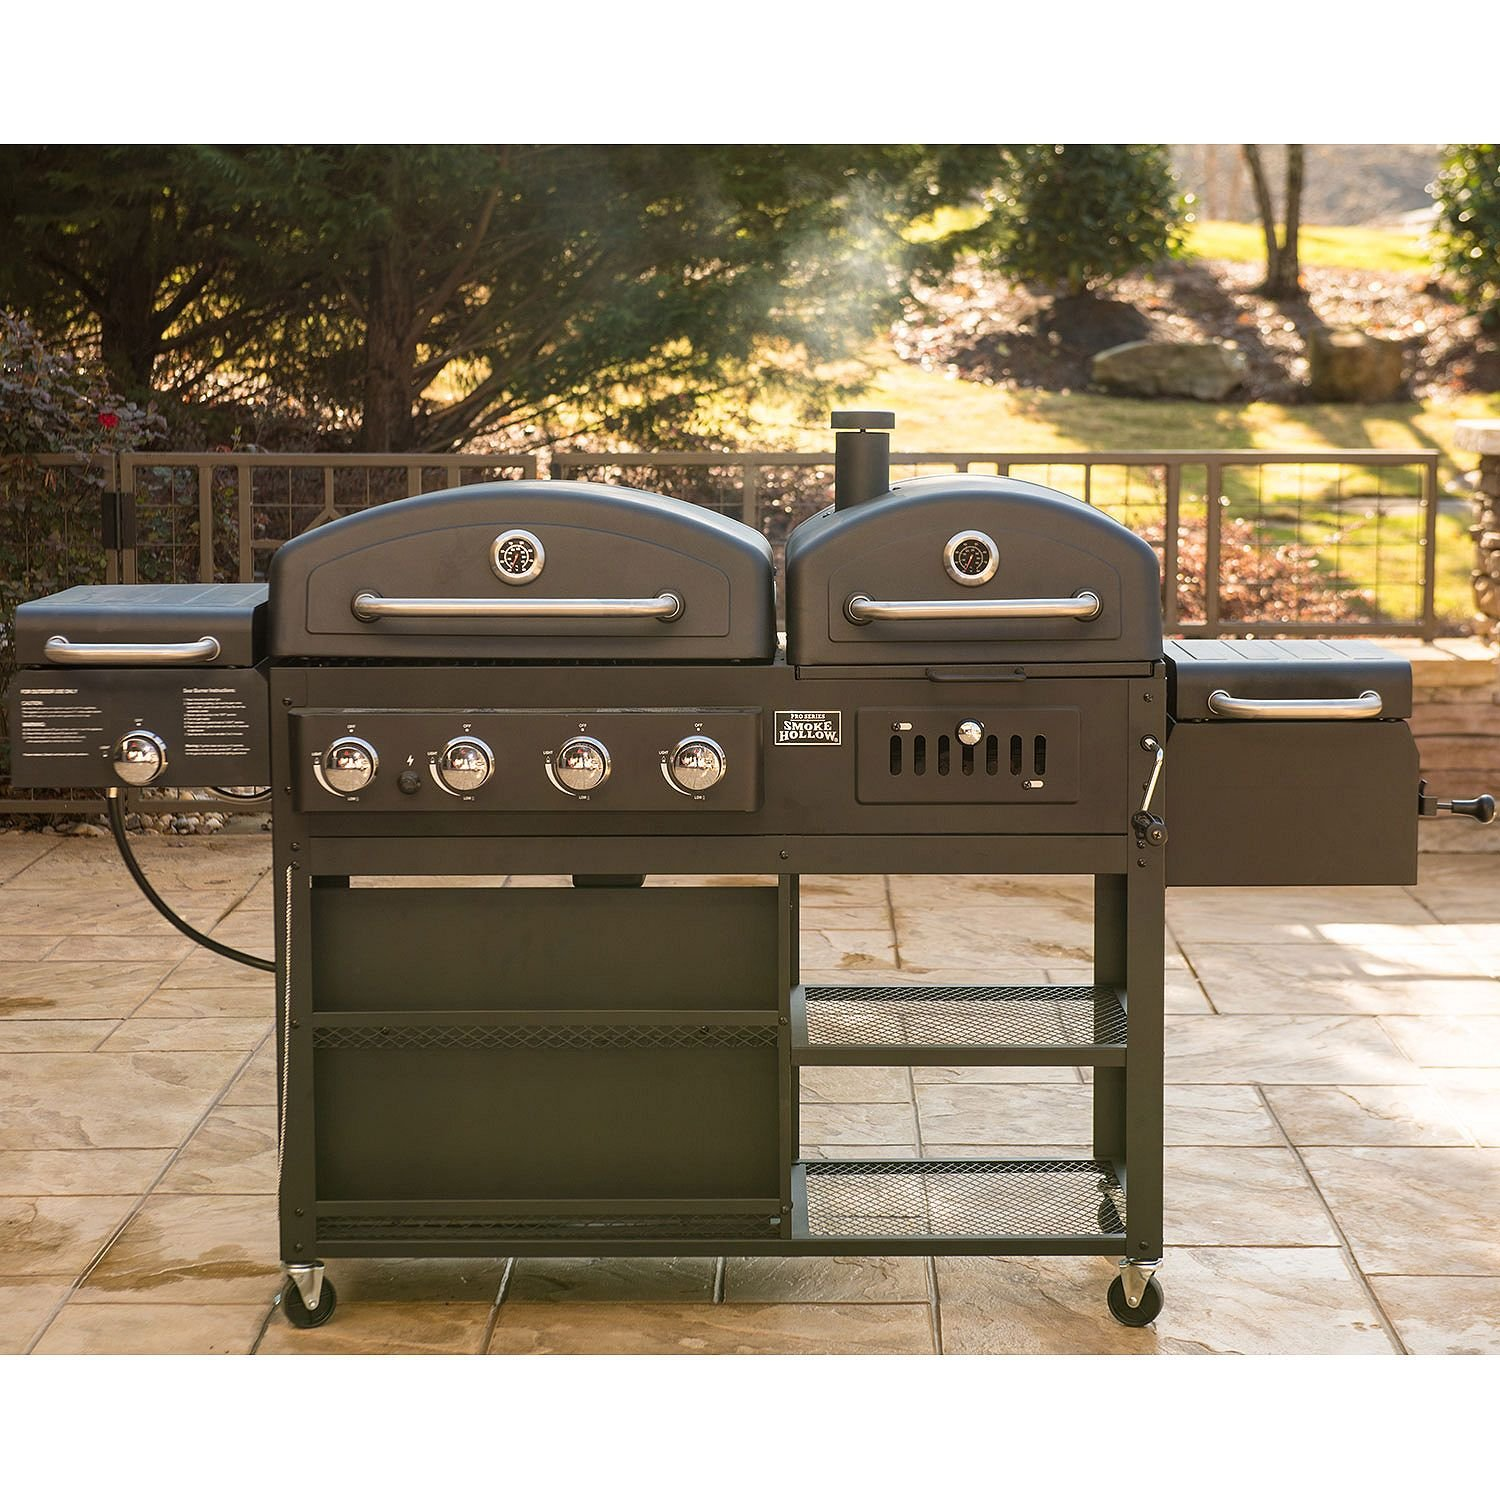 Smoke Hollow 4-in-1 LP Gas Charcoal Smoker Searing BBQ Grill Model PS9900